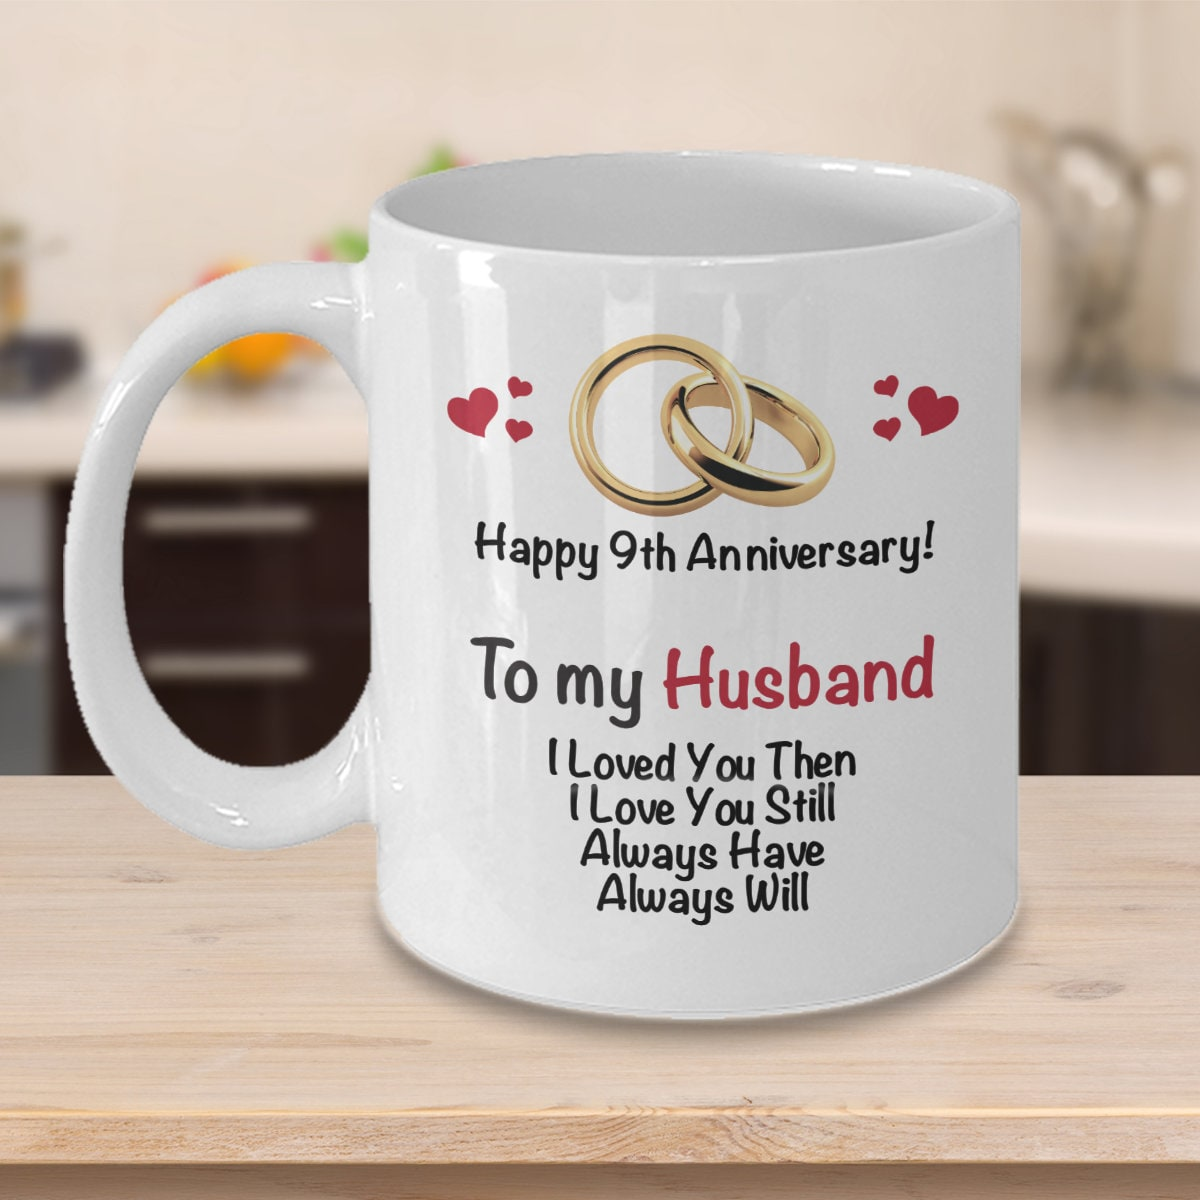 Wedding Anniversary Gifts For Husband Ideas: 9th Anniversary Gift Ideas For Husband 9th Wedding